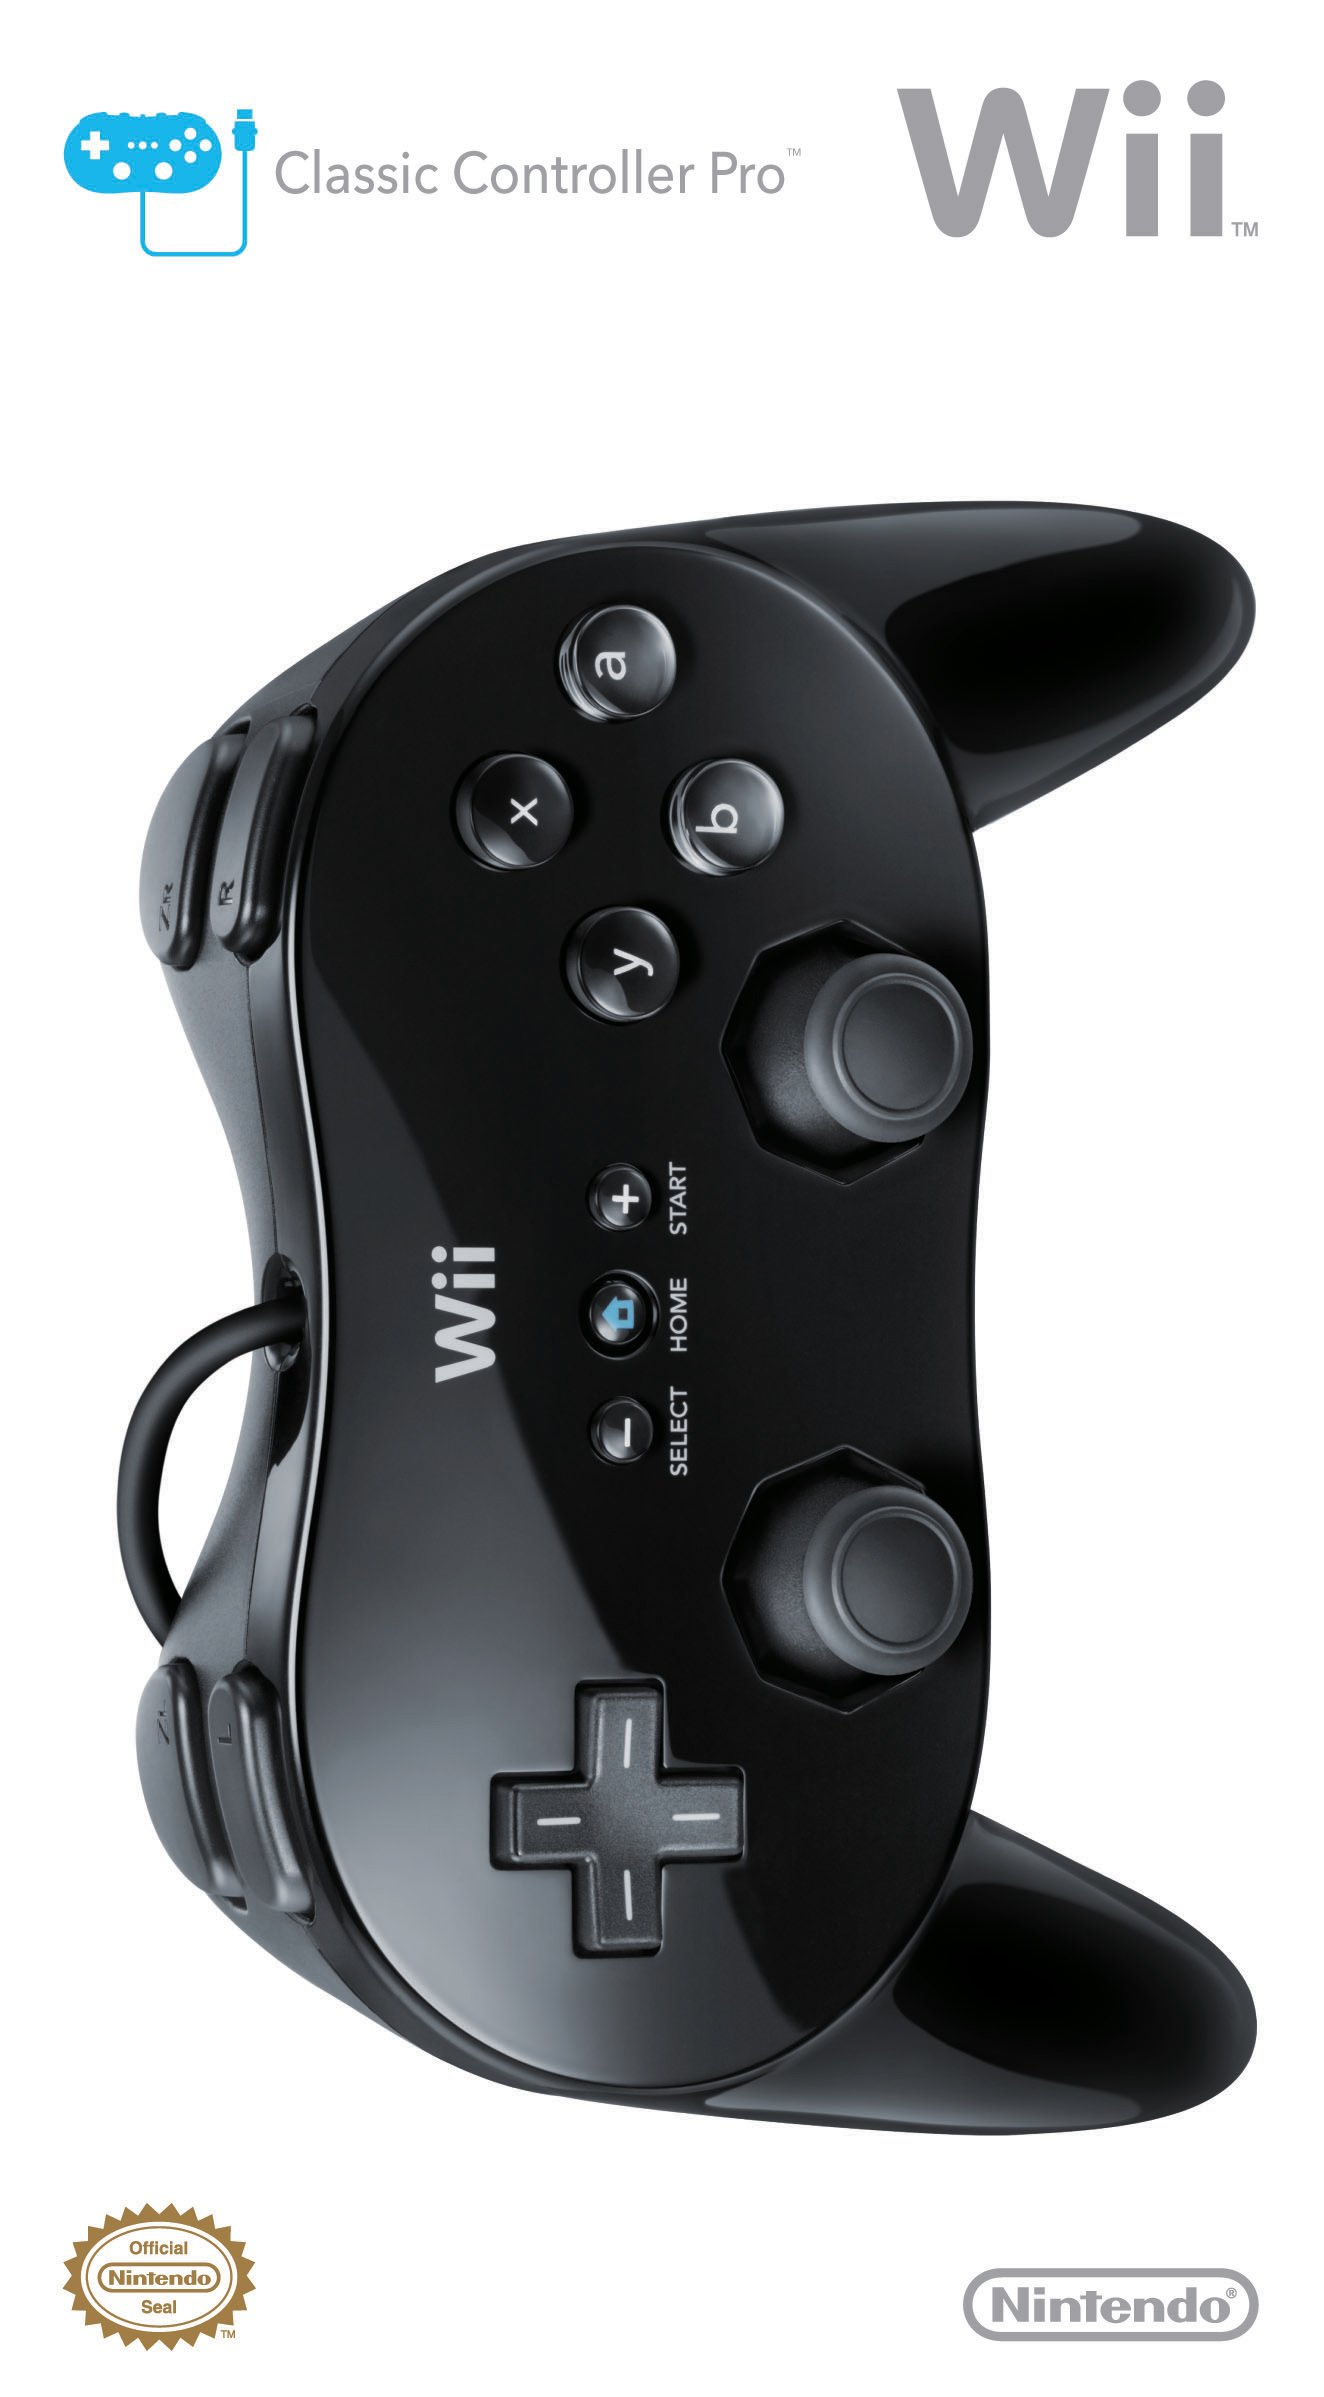 Wii Classic Controller Pro - Black - Nintendo Wii Standard Edition by Nintendo (Image #3)